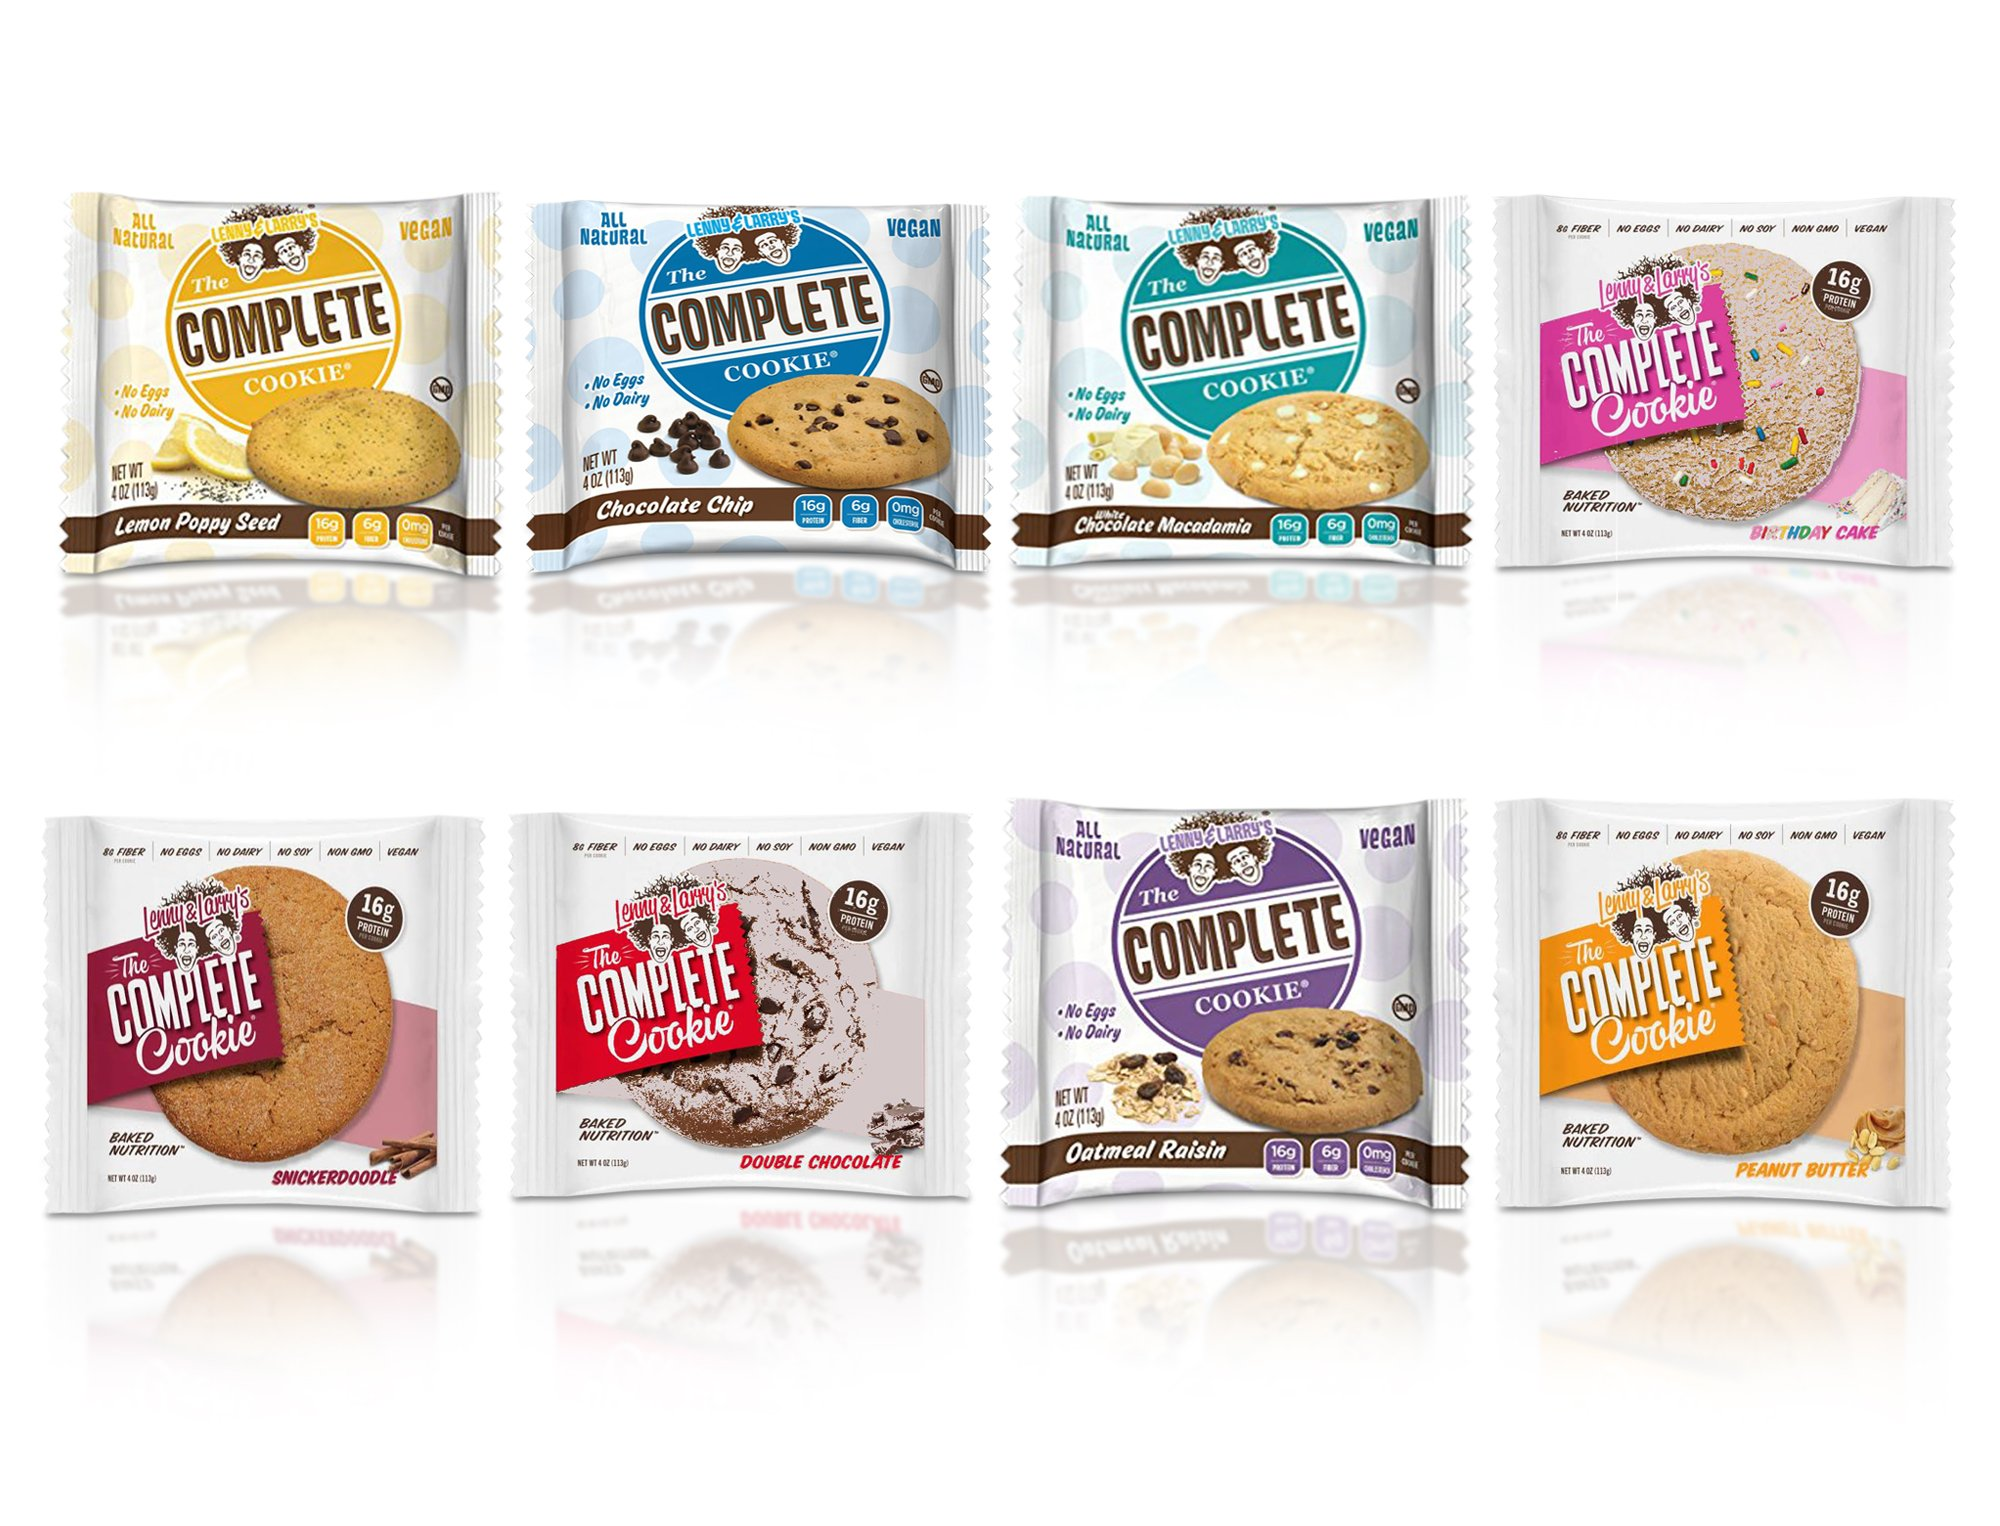 Lenny & Larry's Cookie 8 Flavor Variety With New Flavors - 8 Pack, One of Each Flavor by Lenny & Larry's (Image #1)